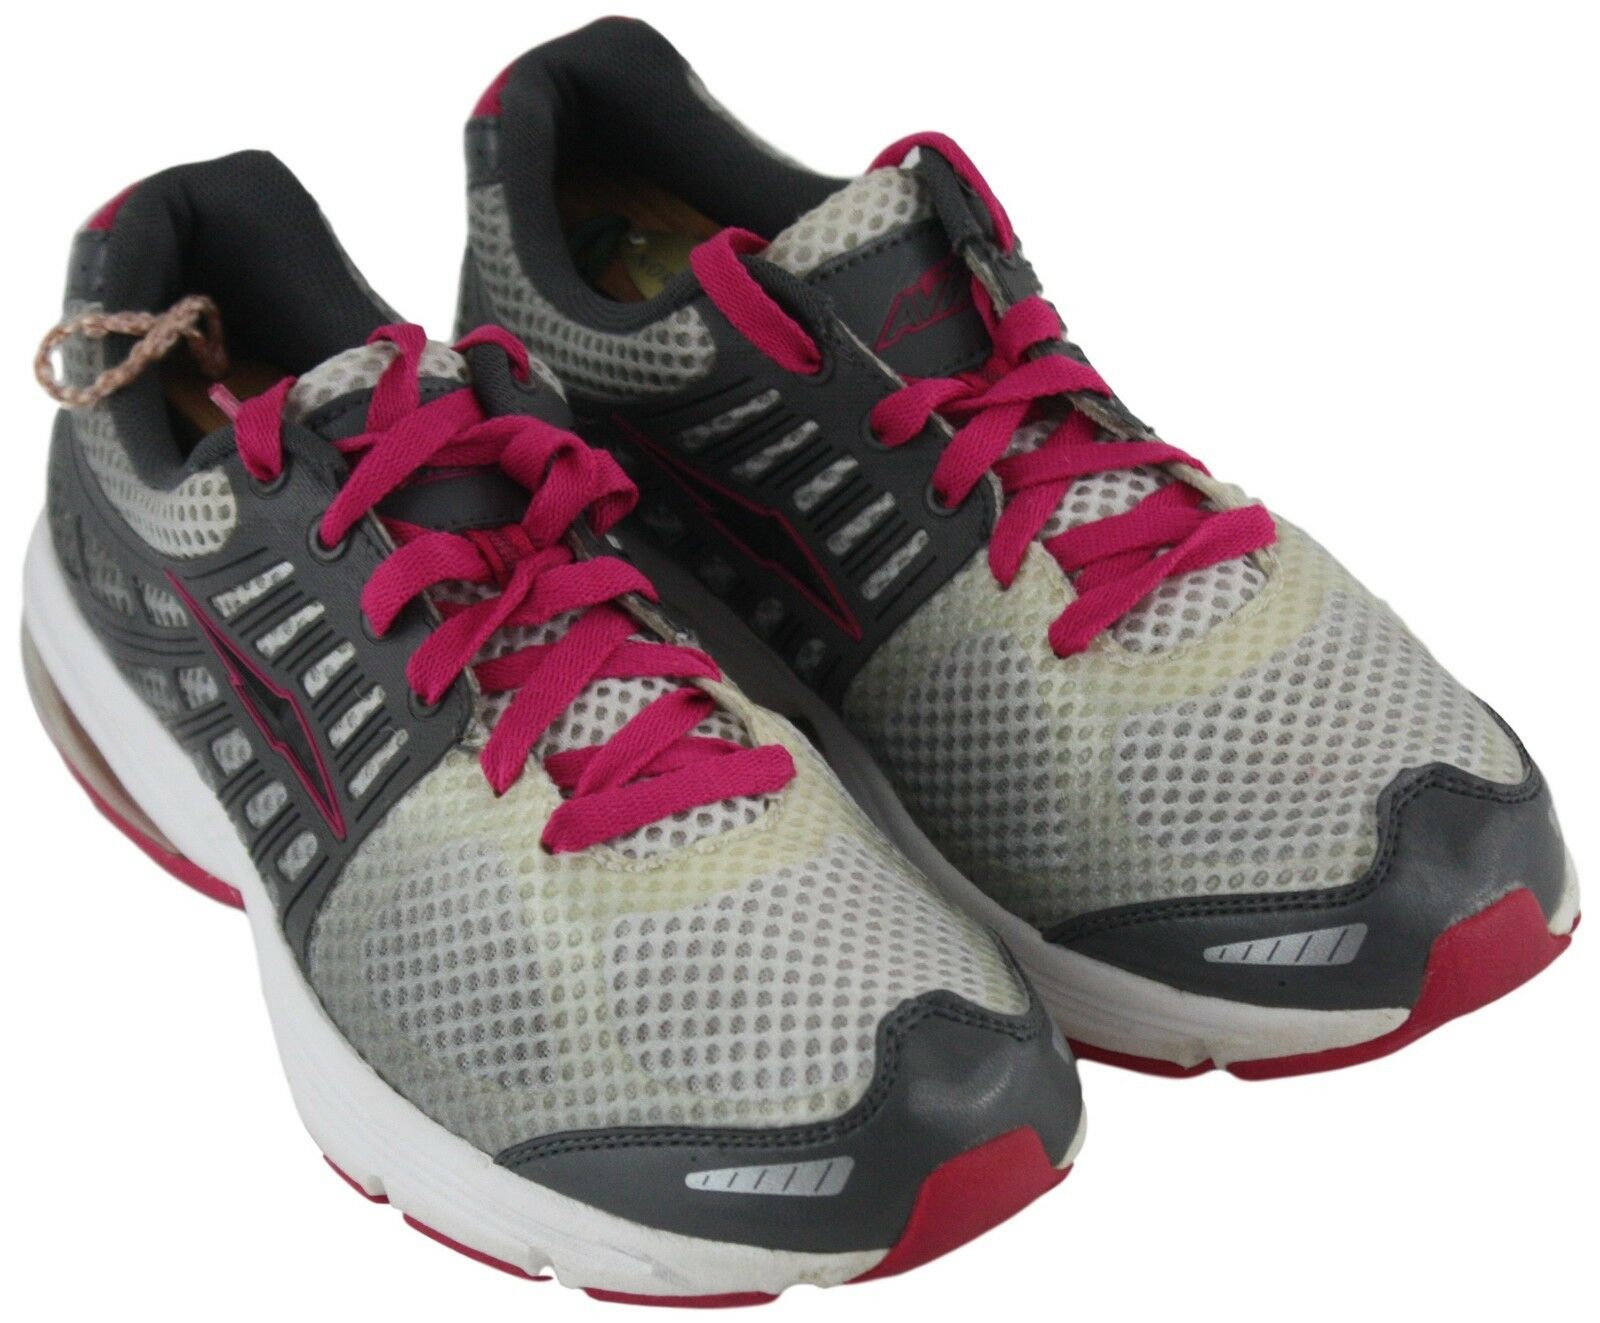 Avia Womens Ladies AVI 180 Grey Shoes Pink Lace Up Athletic Shoes Grey Sneakers Size 8.5 d091bf